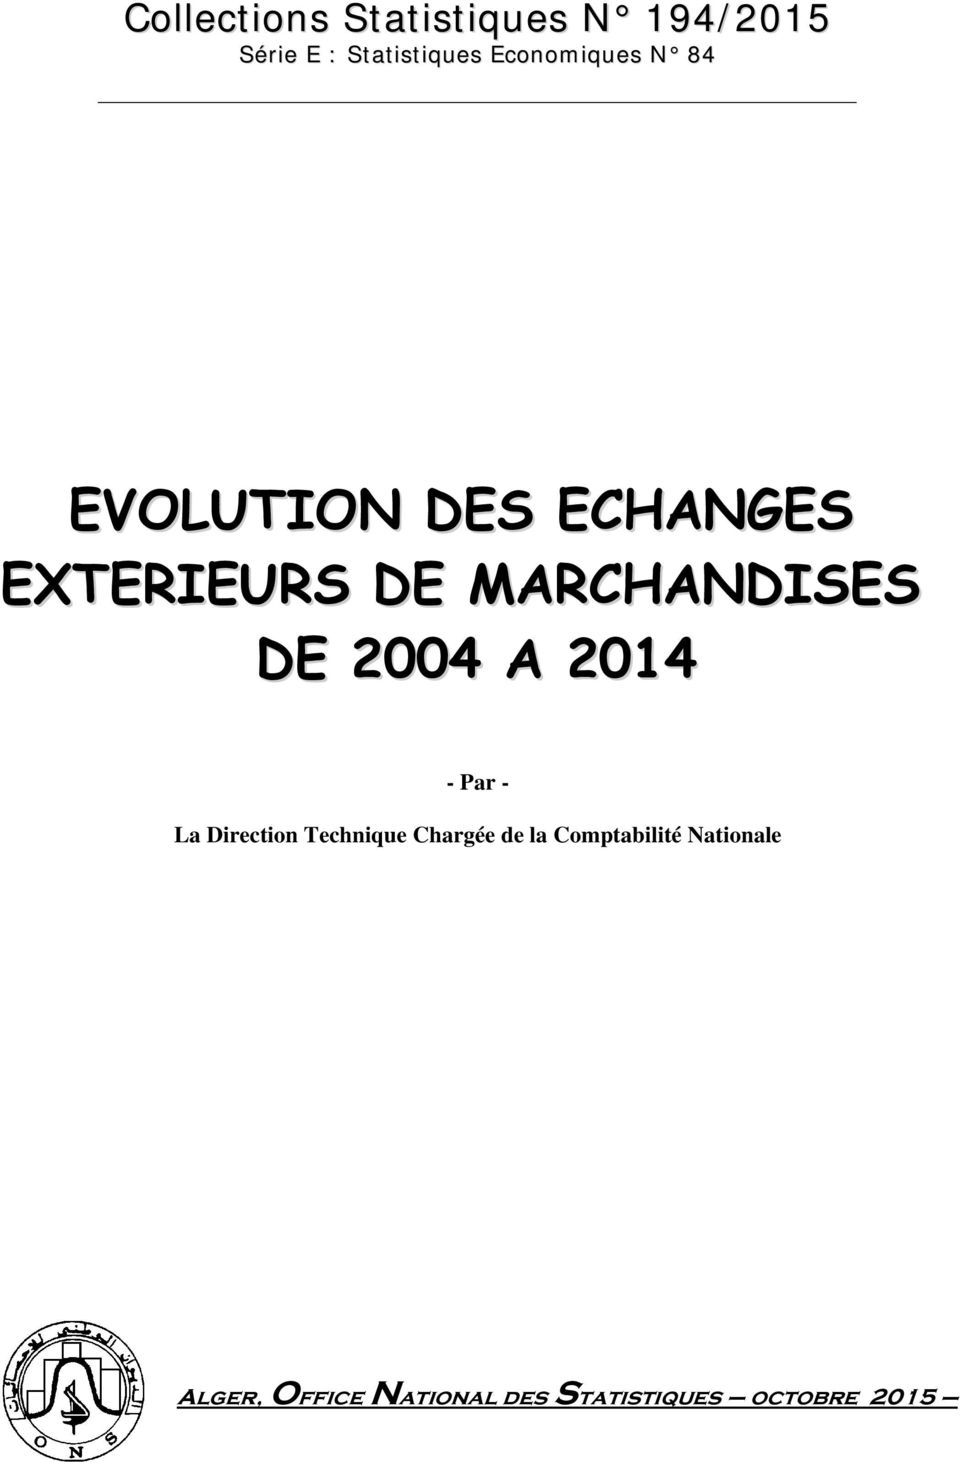 MARCHANDISES DE 2004 A 2014 - Par - La Direction Technique